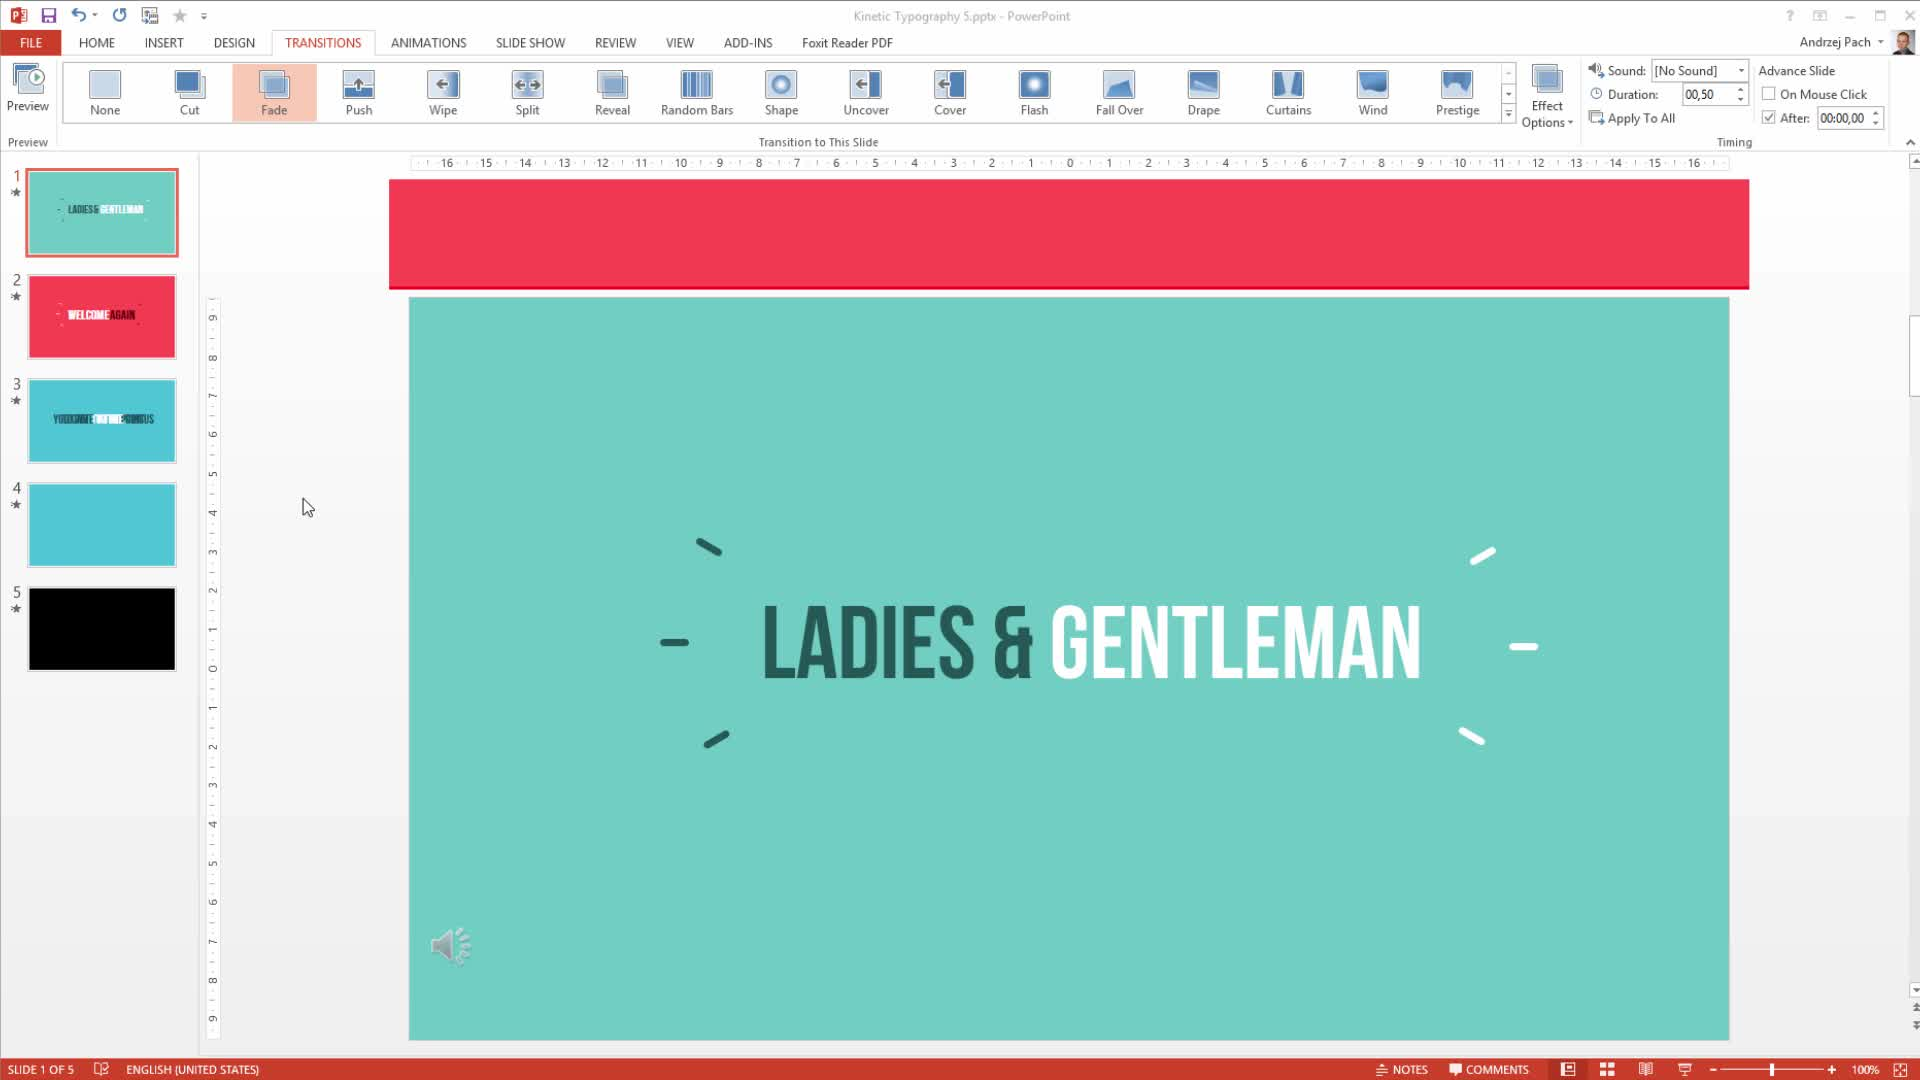 Kinetic Typography in Powerpoint: Make an Animation Video | Andrzej